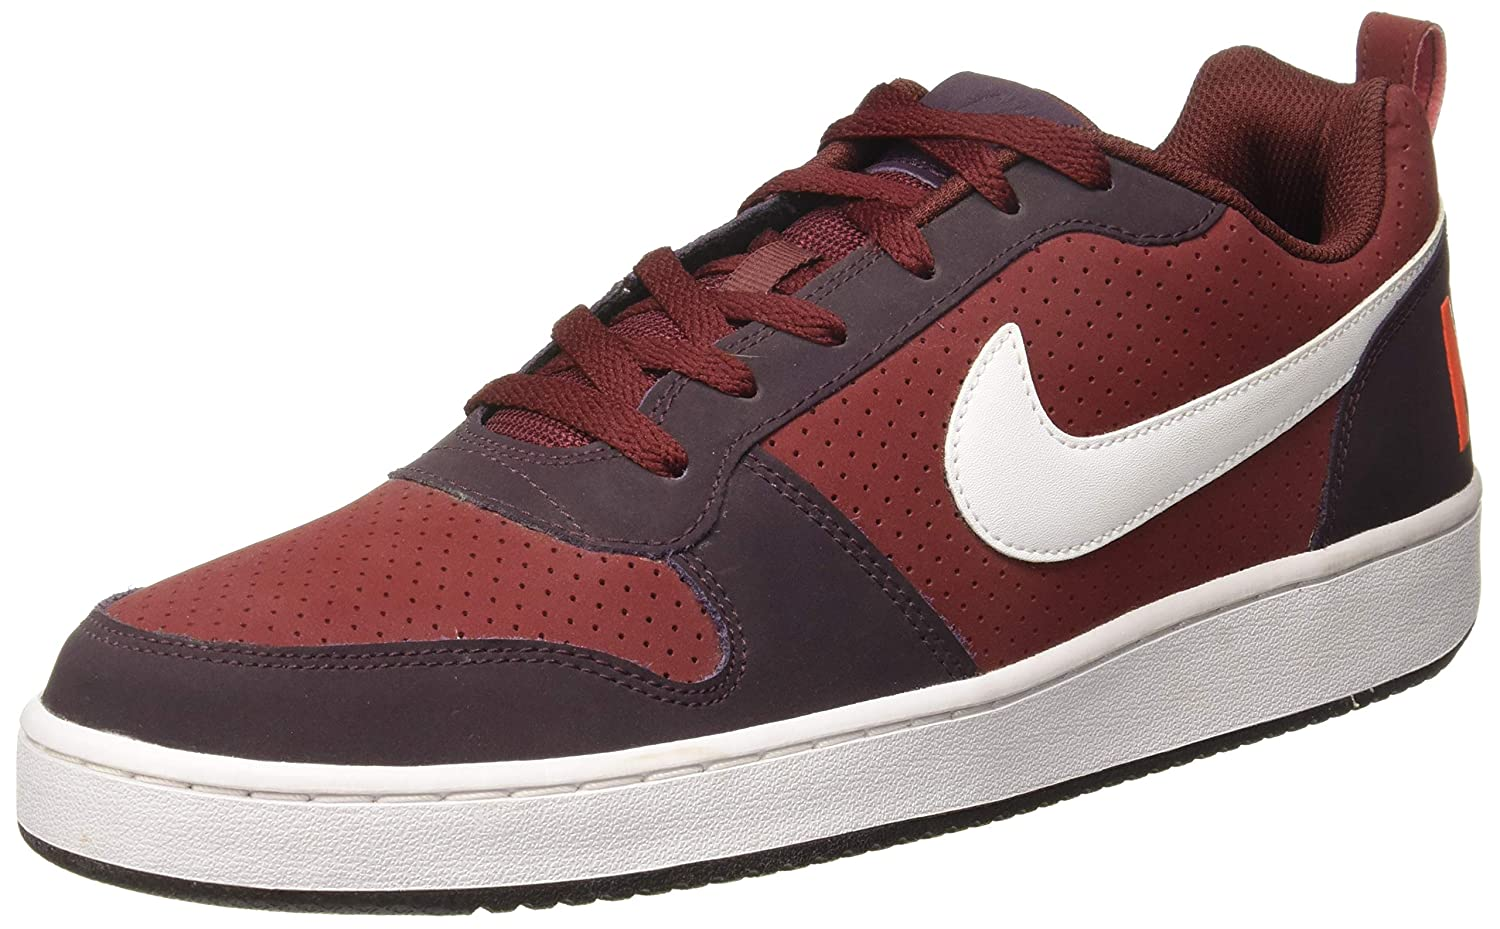 100% genuine cost charm 100% genuine Nike Men's Court Borough Low Maroon Sneakers